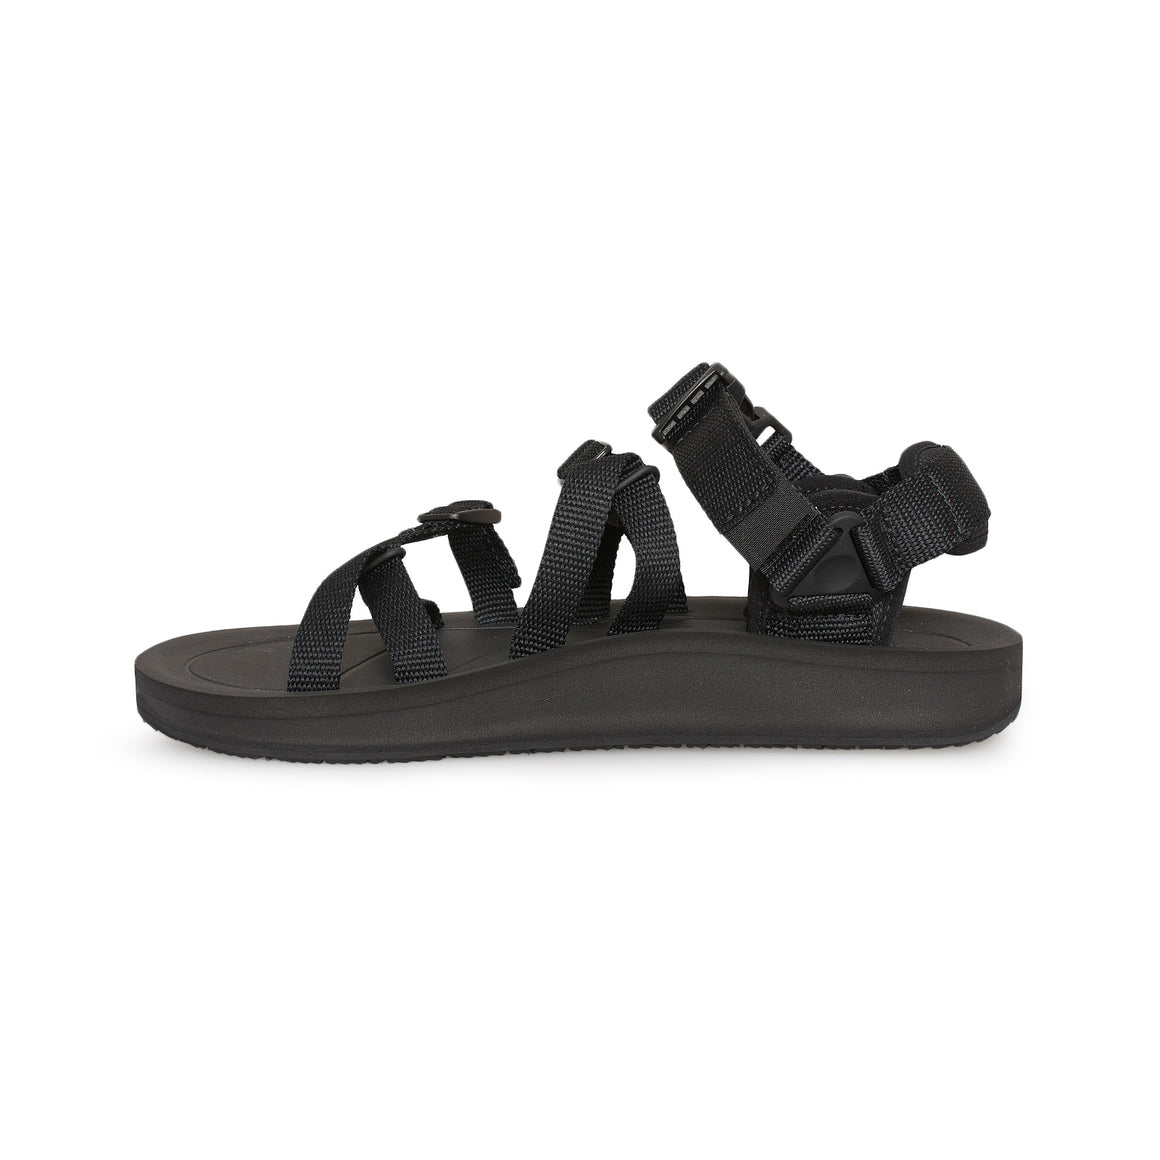 Teva Alp Premier Black Sandals - Men's